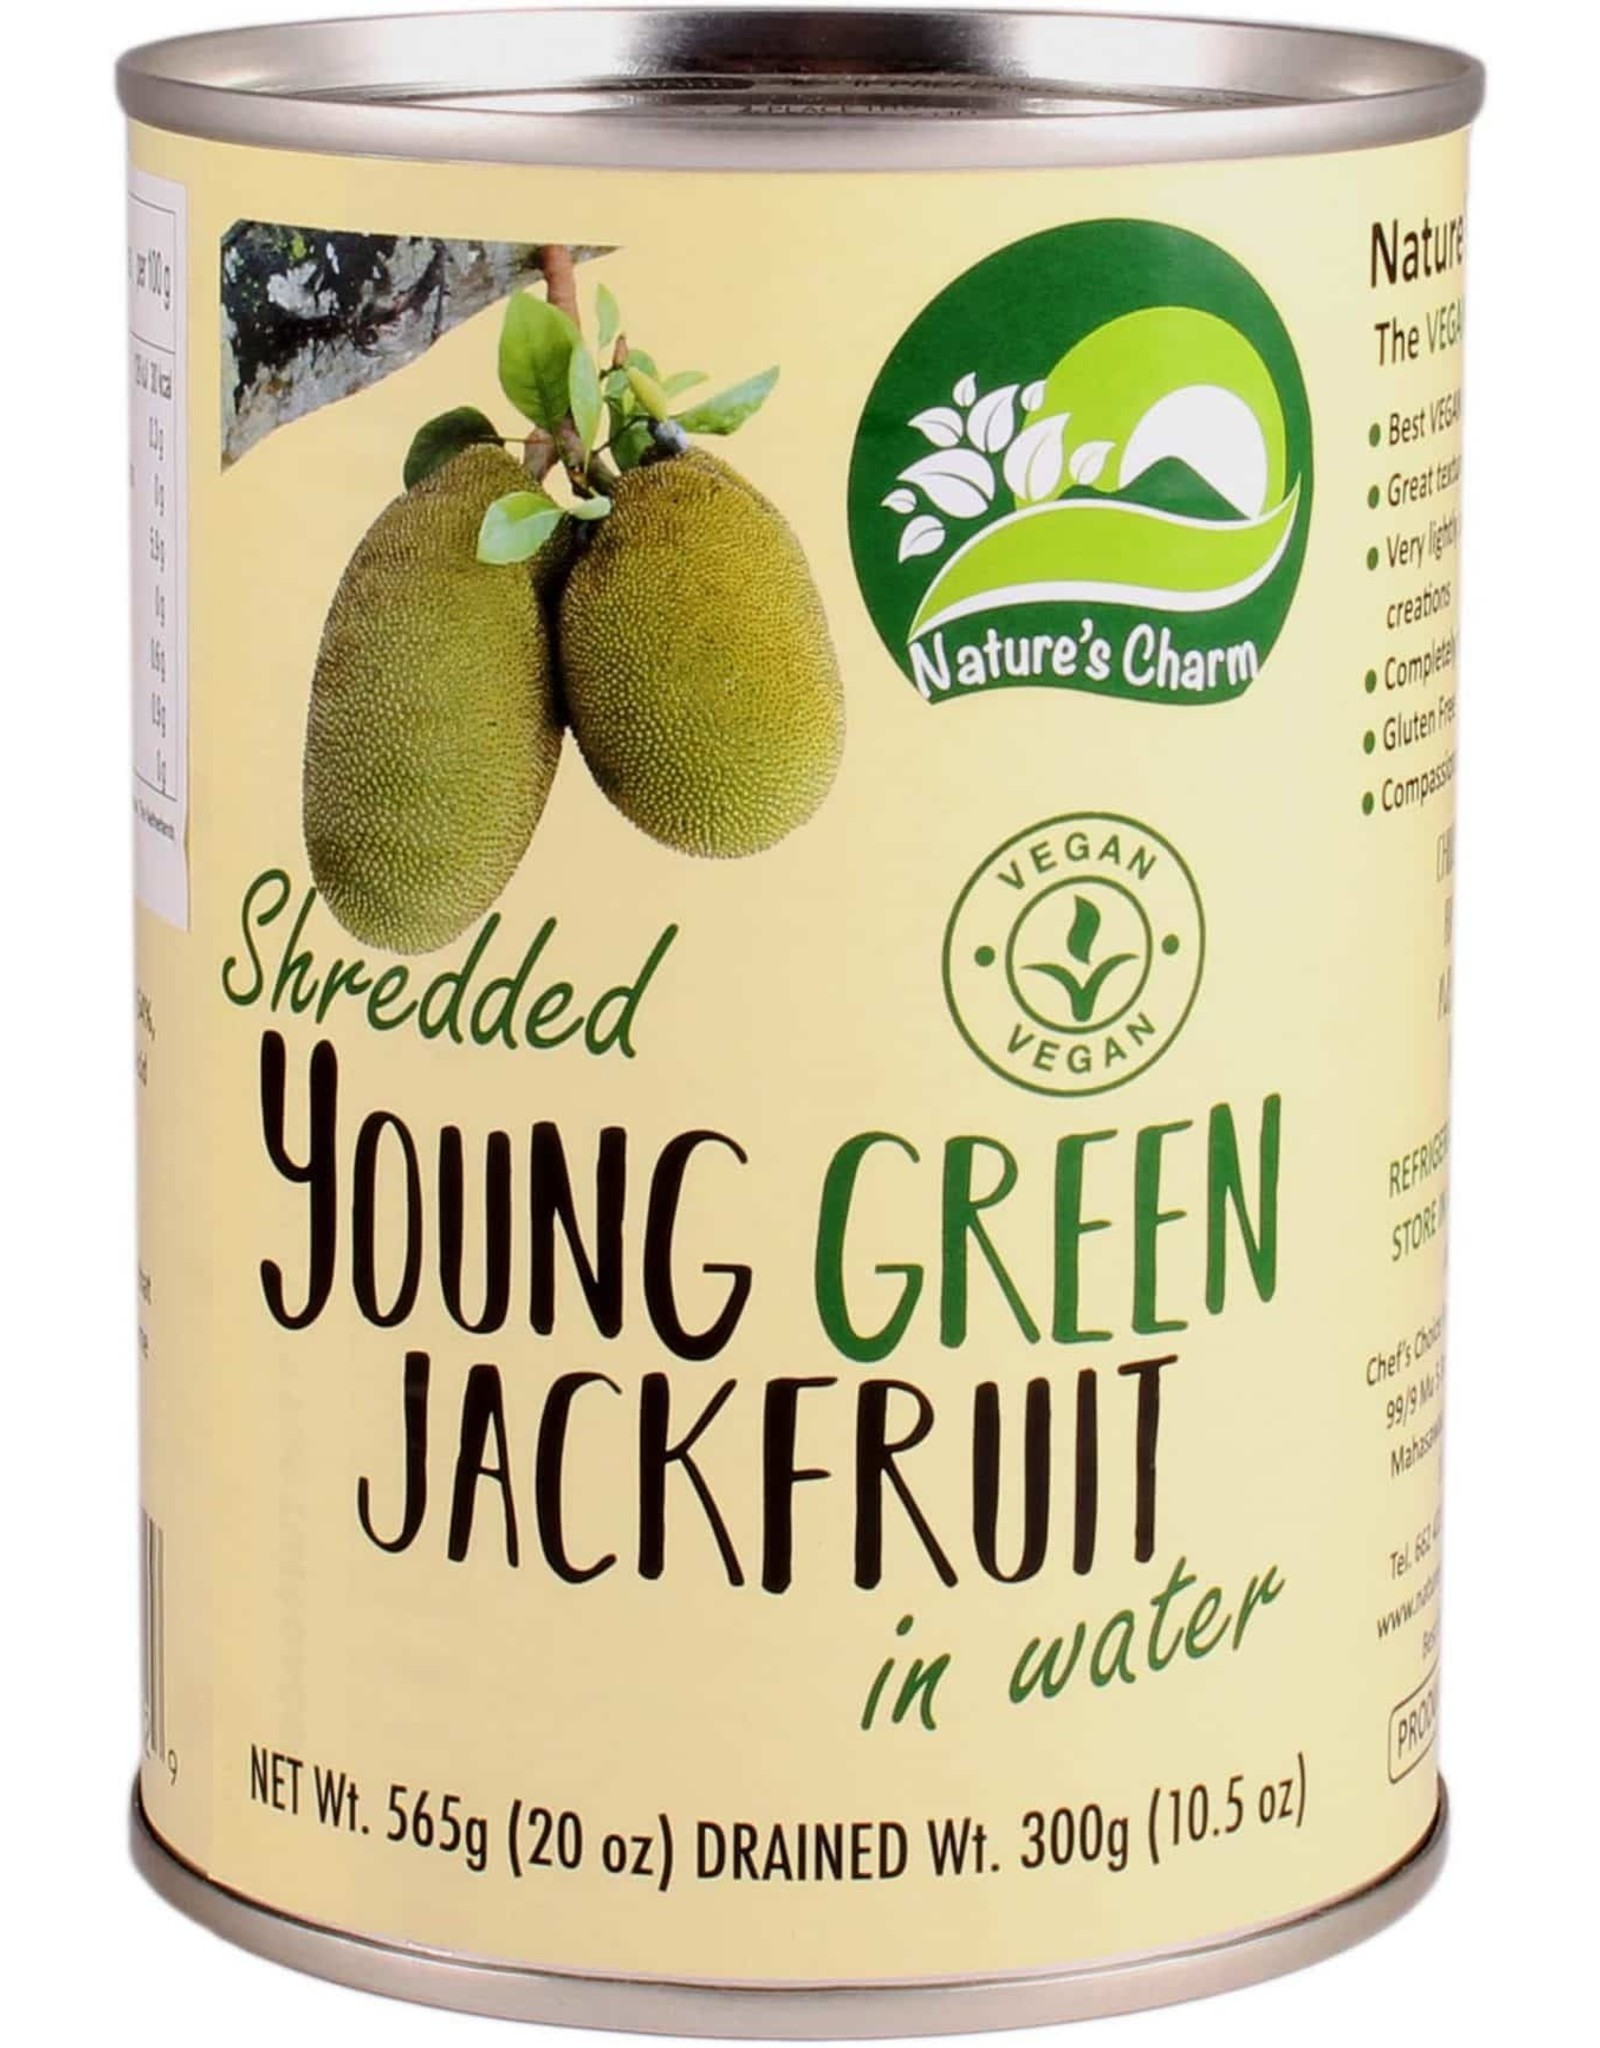 Nature's Charm Shredded Young Green Jackfruit in Water